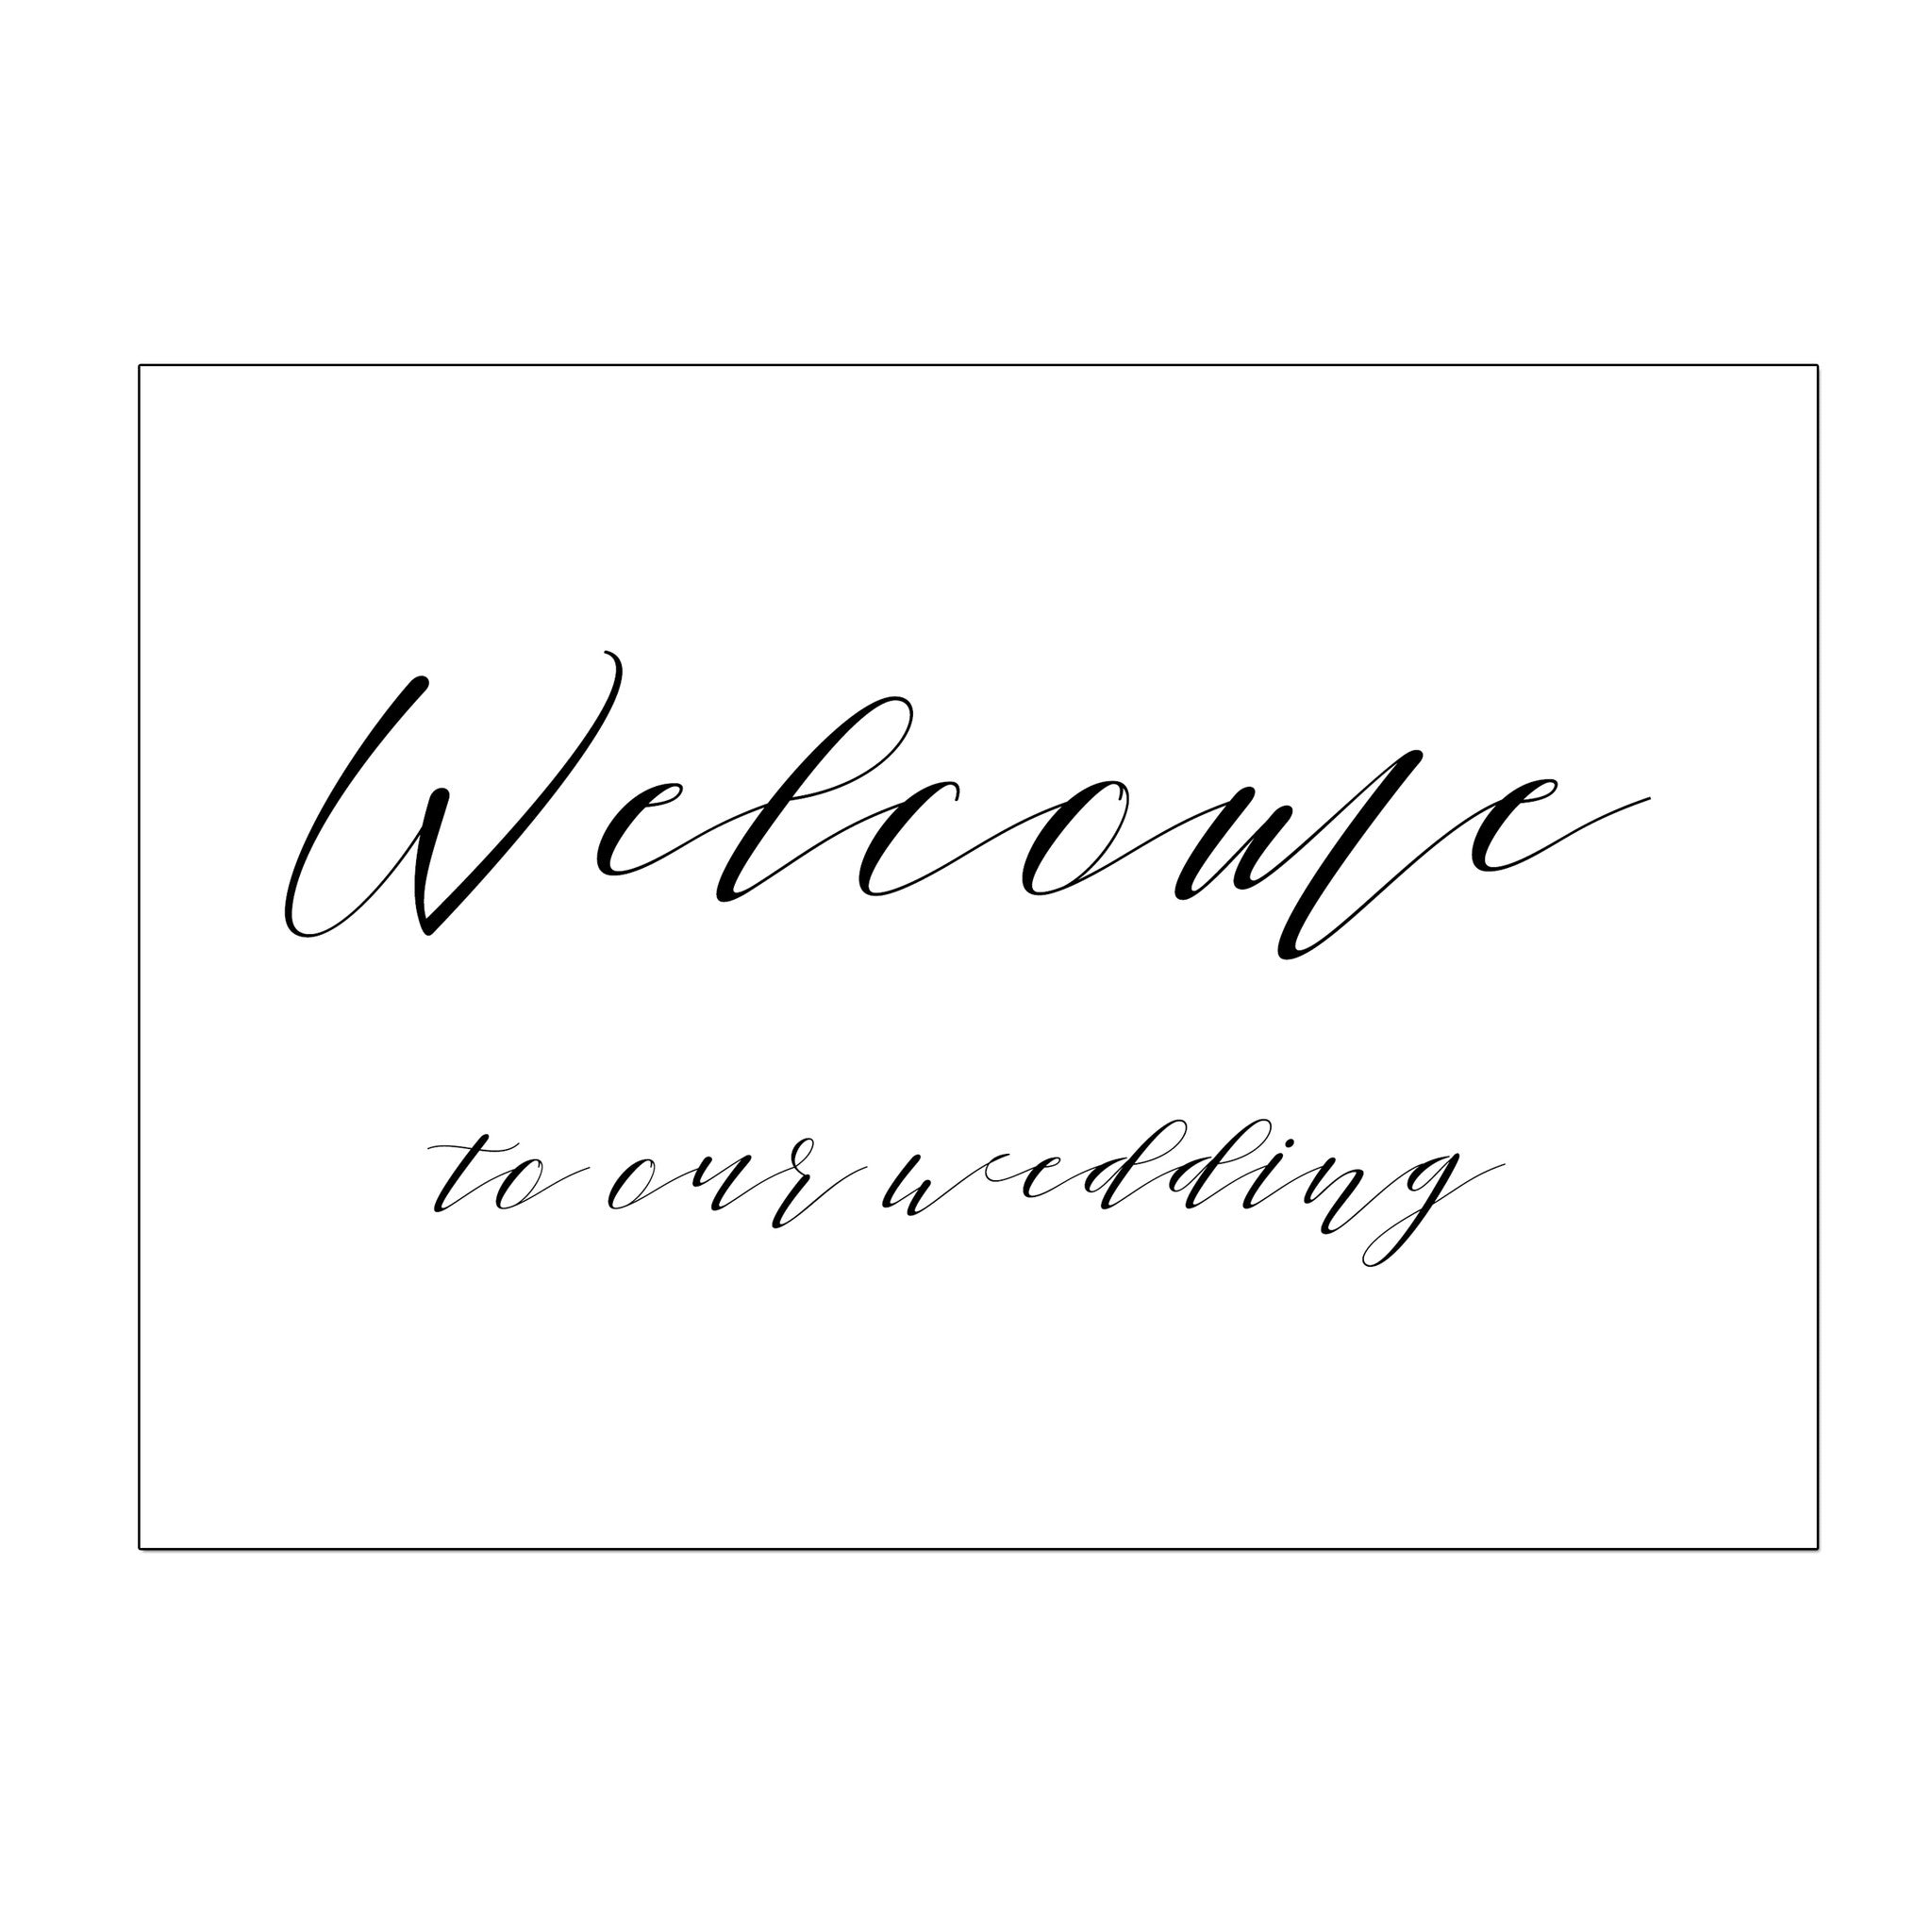 Welcome To Our Wedding - Digital Download / Printable – The Wedding ...